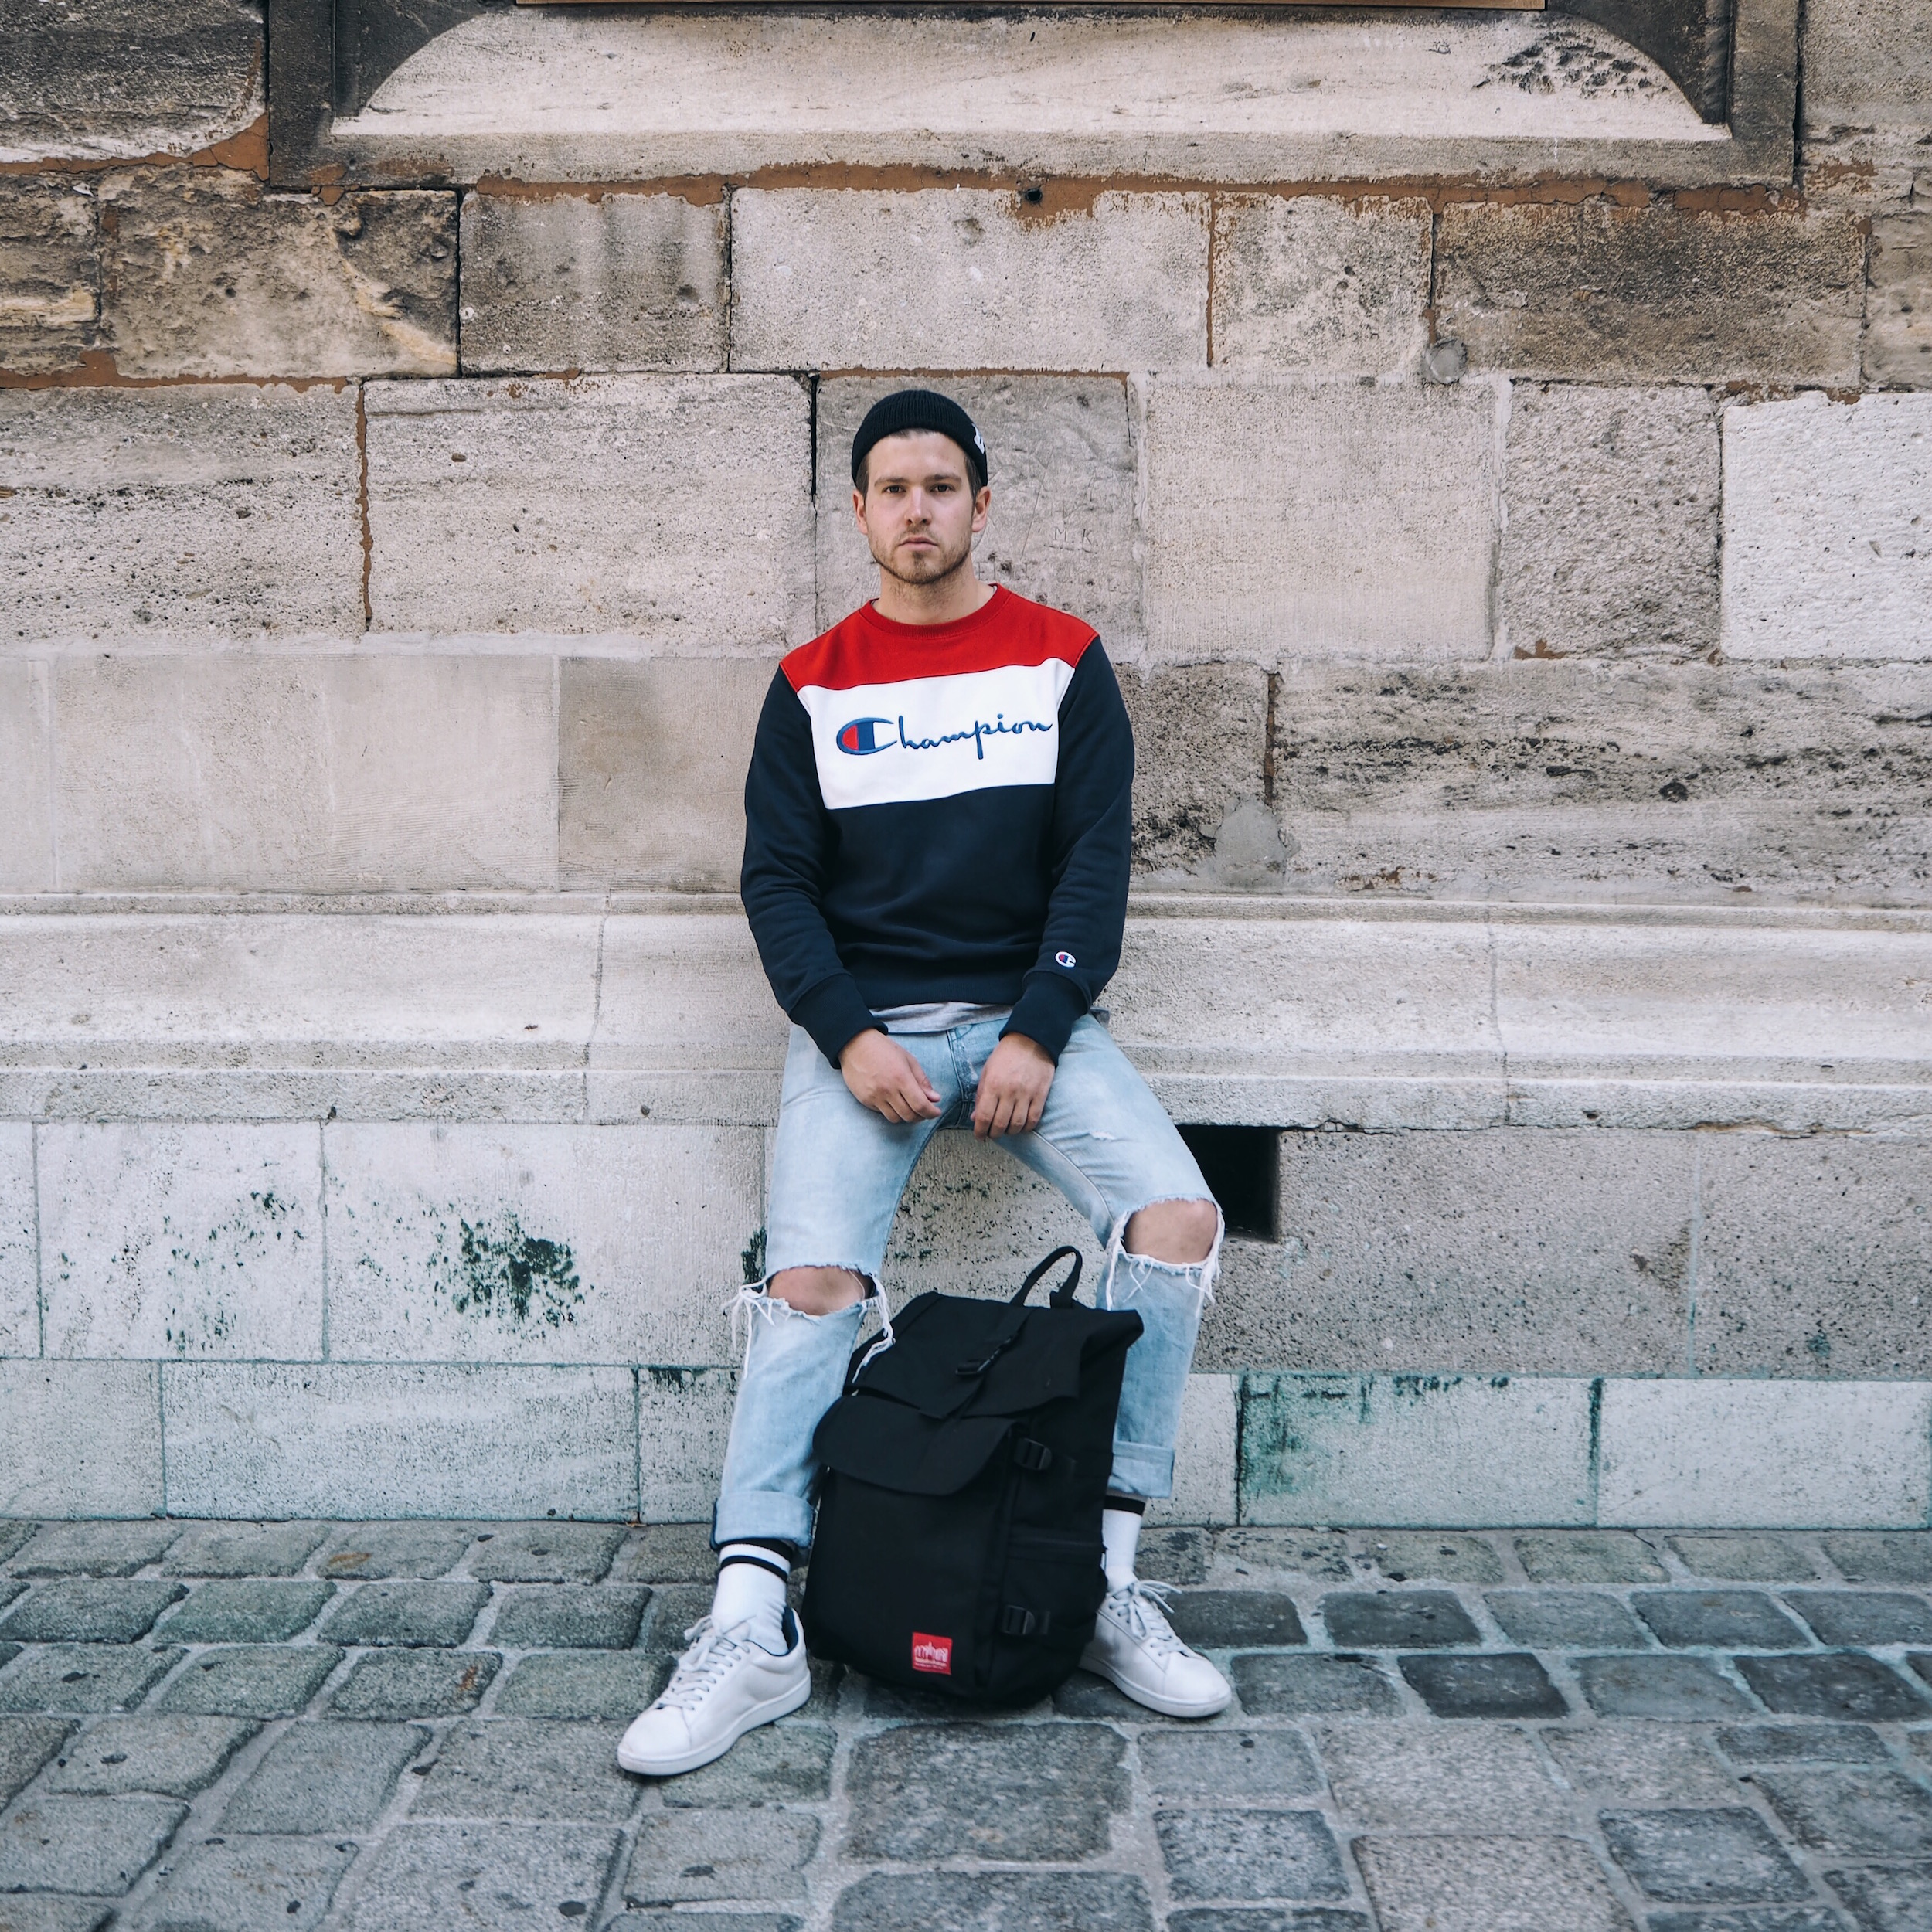 Ripped Jeans Trend: How to Wear Ripped Jeans pics